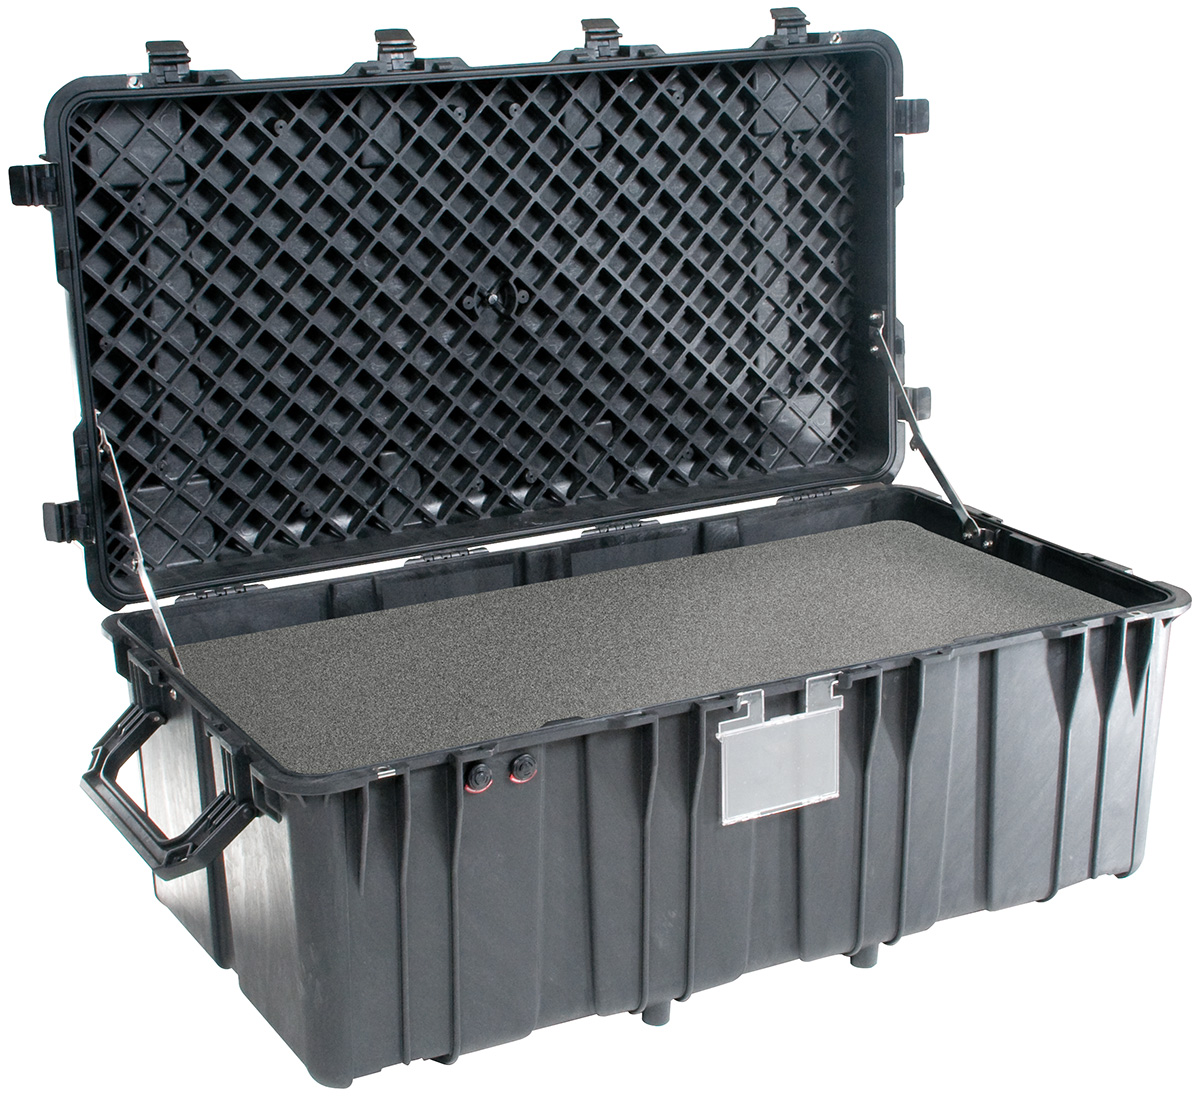 pelican peli products 0550 protective equipment transport case